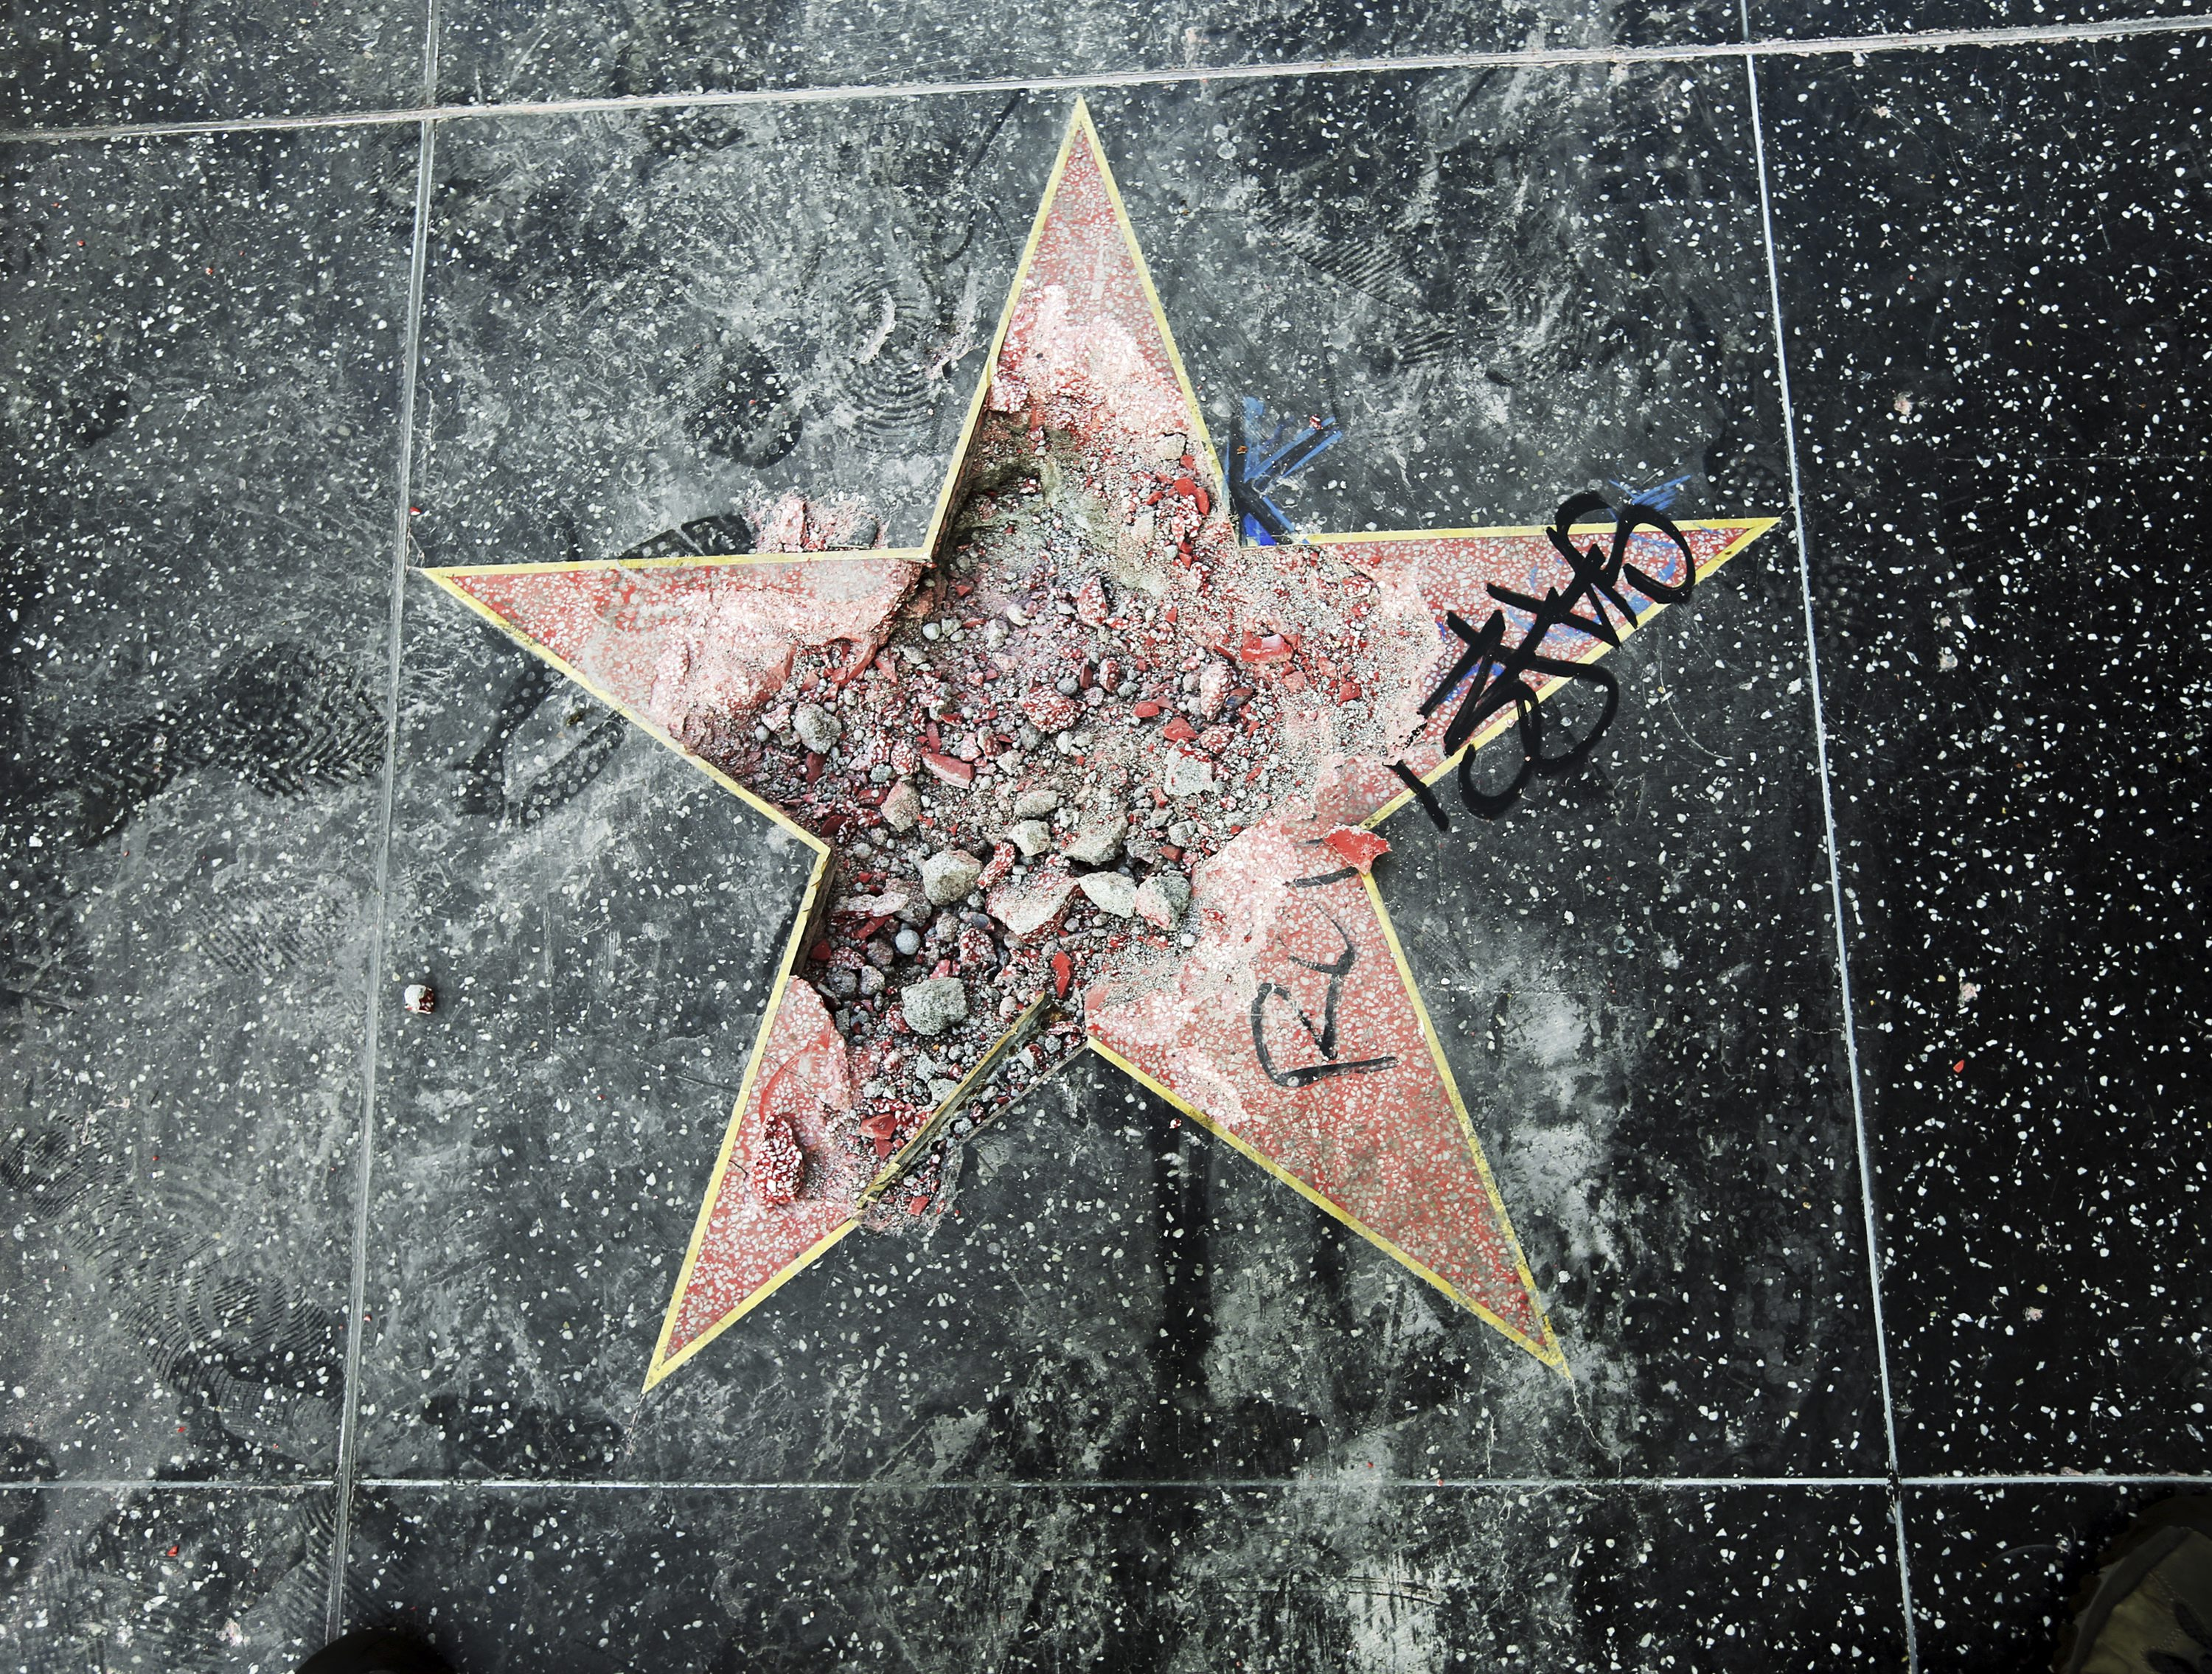 President Trump's star on Walk of Fame destroyed, again